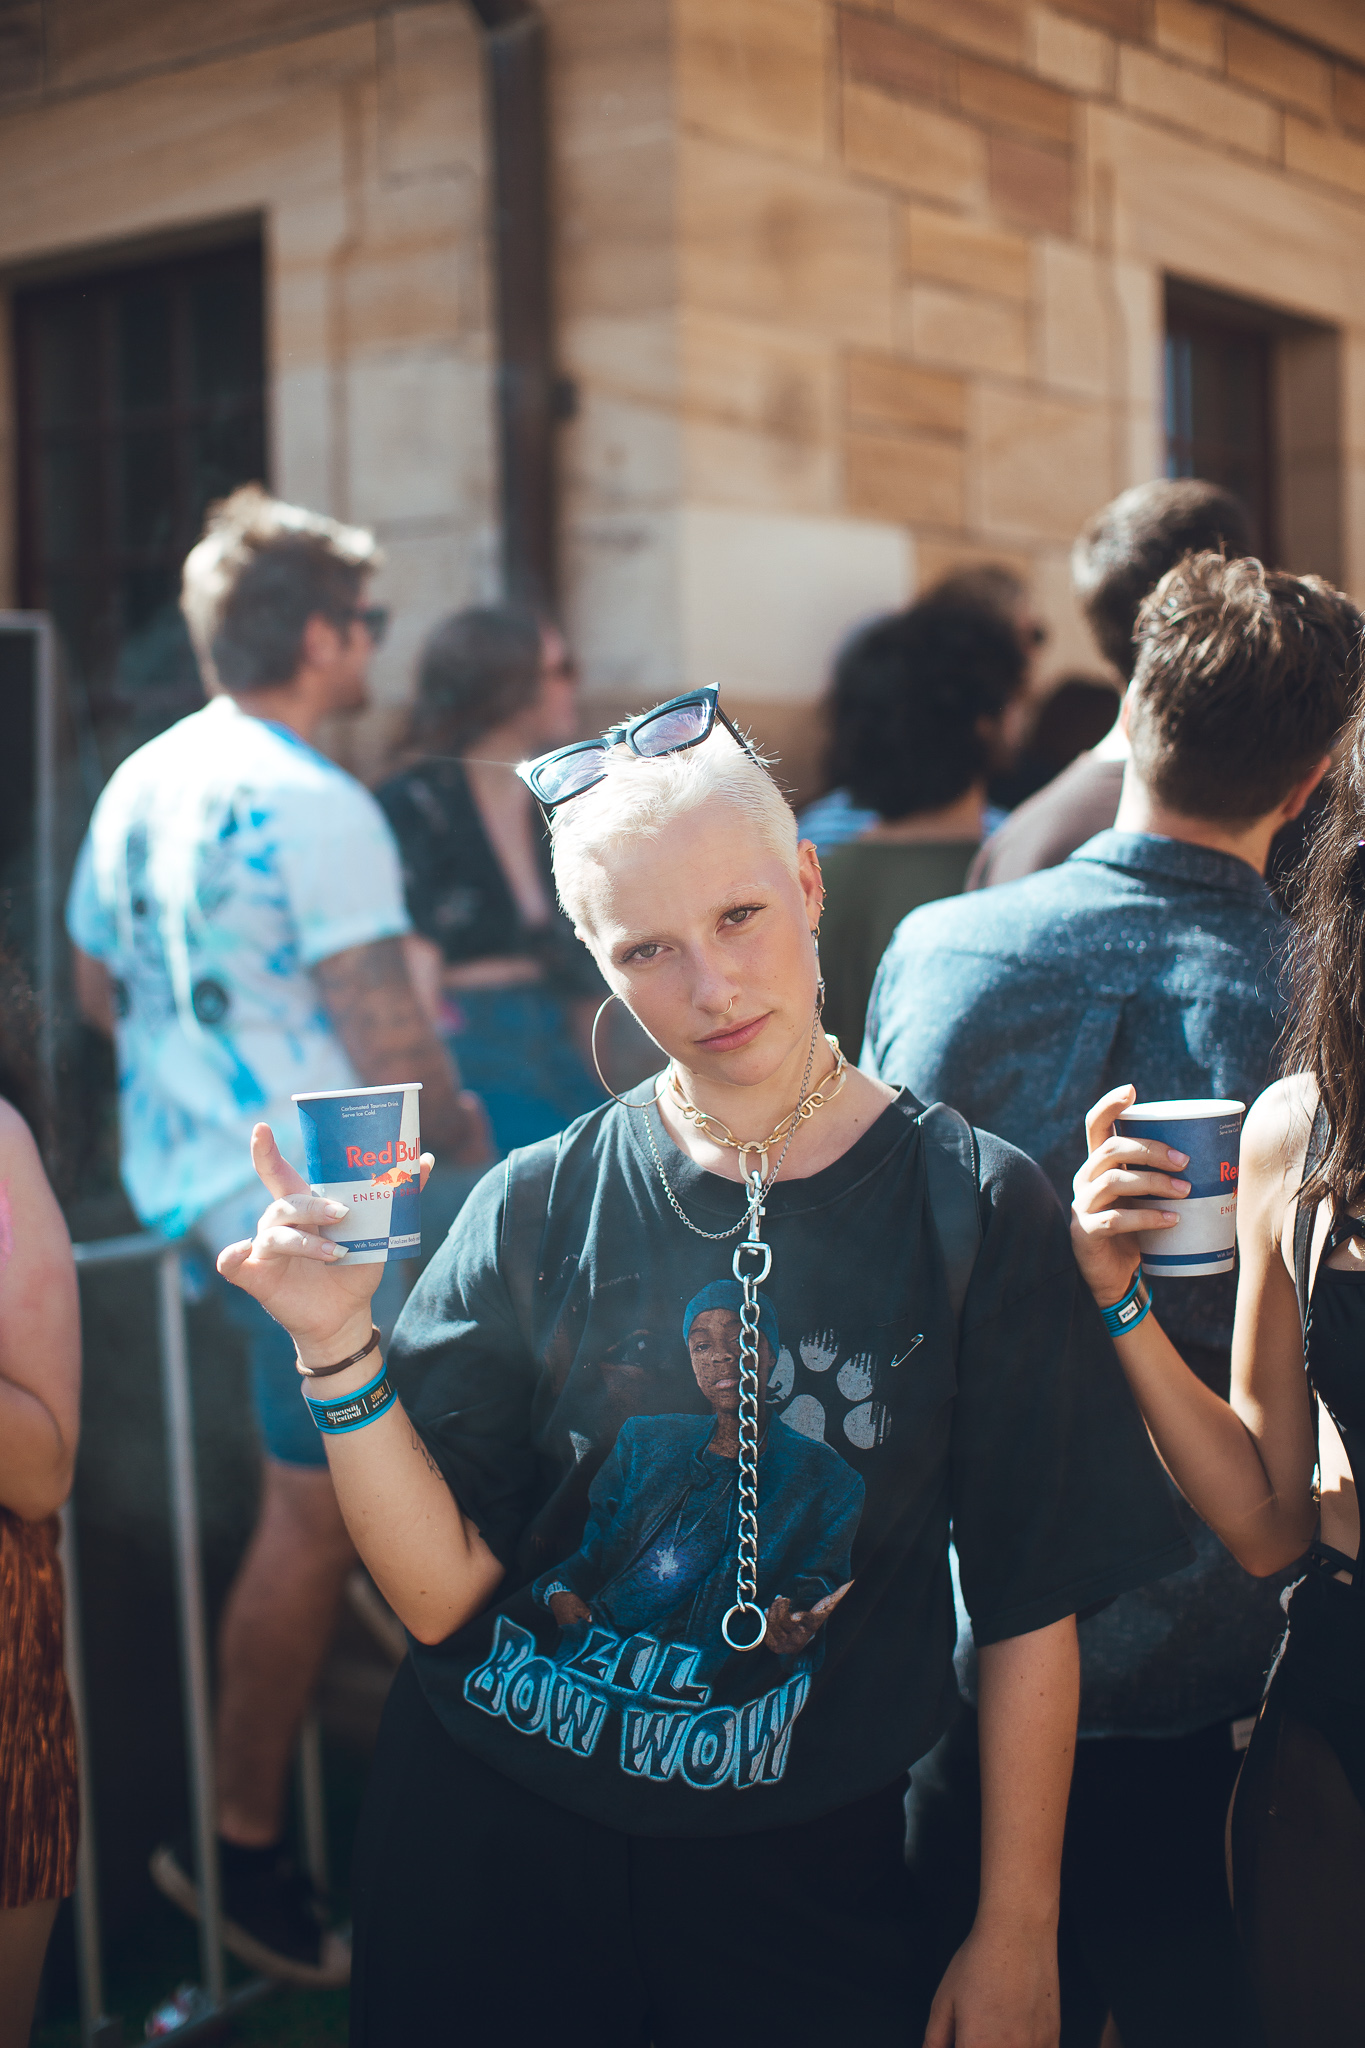 laneway_photo-by-oliver-minnett-00088